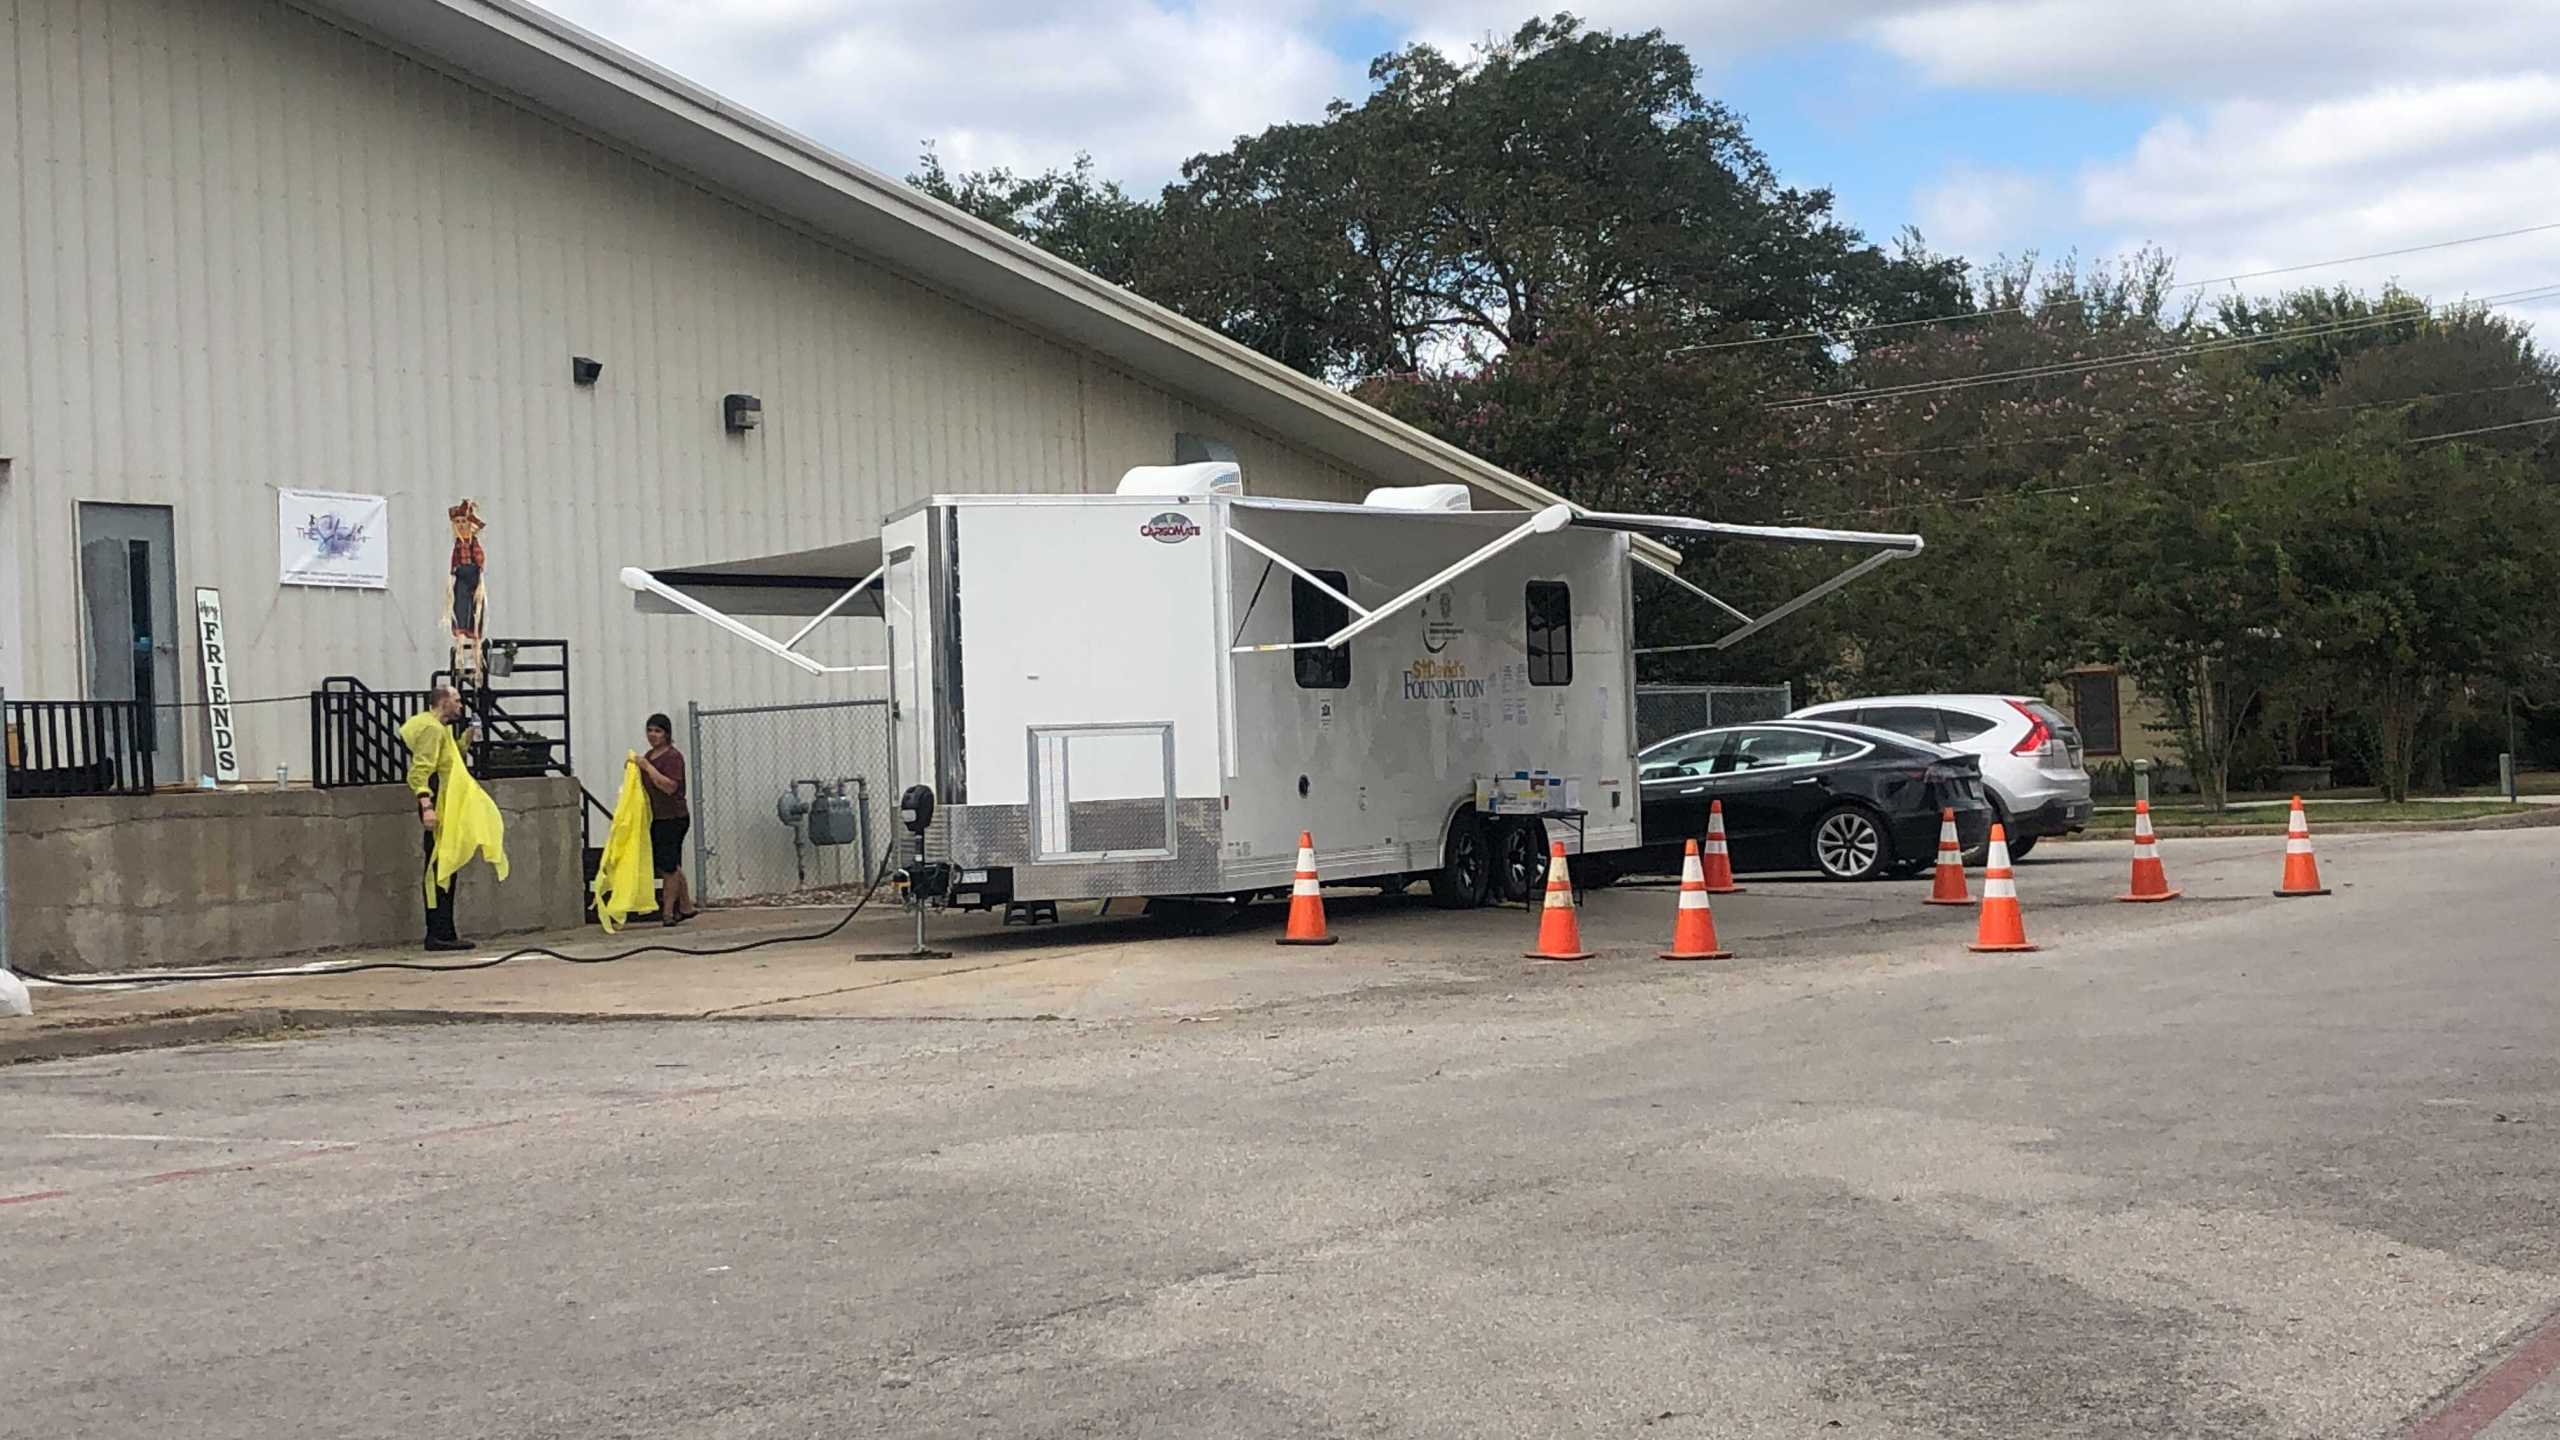 Bastrop County's first free mobile COVID-19 testing clinic is up and running at Smithville Recreation Center. (KXAN Photo/Frank Martinez)